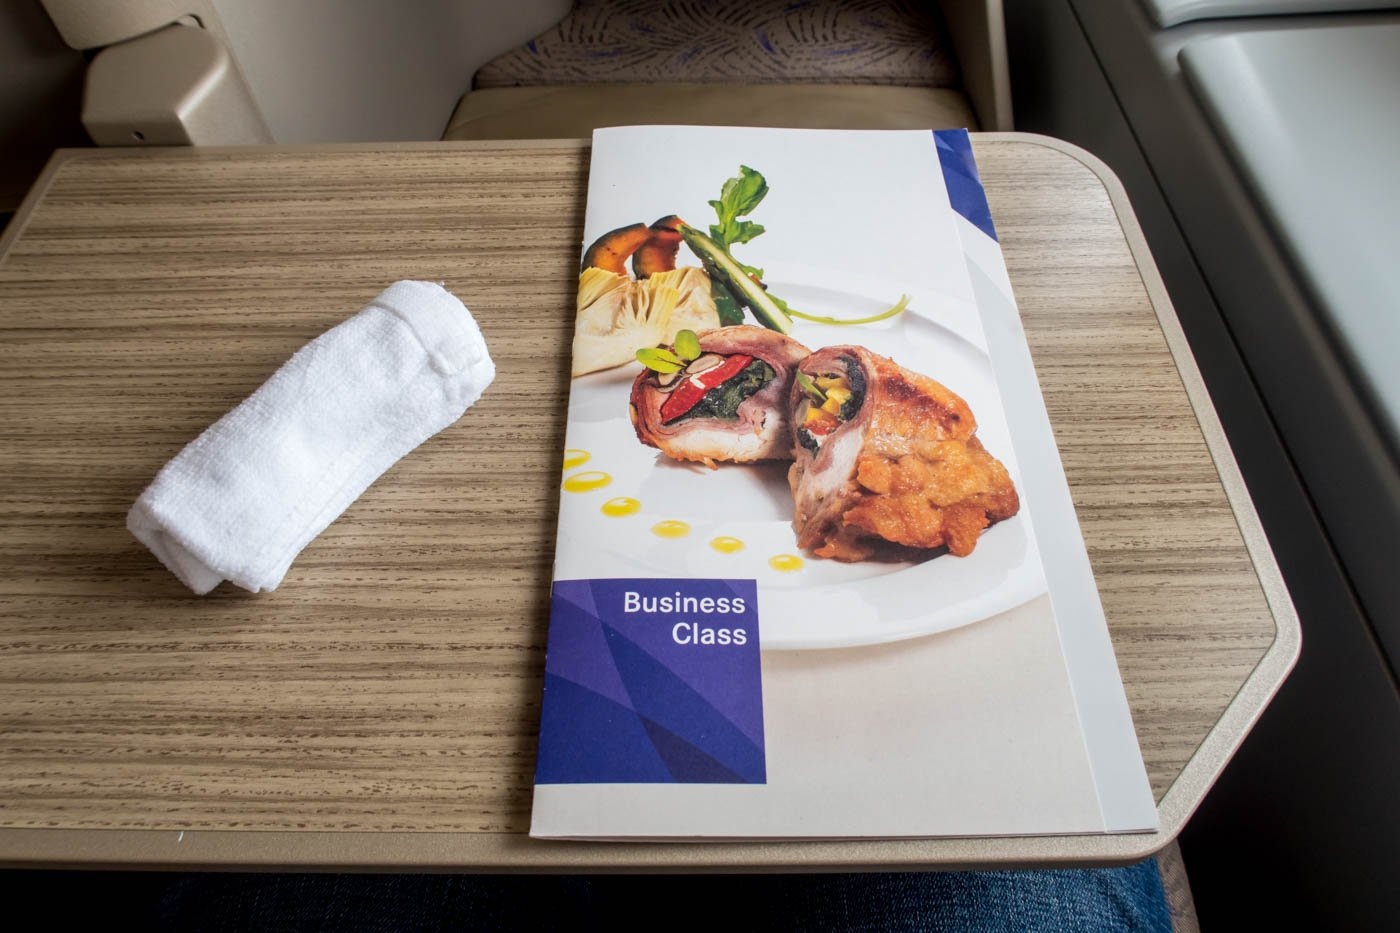 Asiana Airlines Business Class Menu